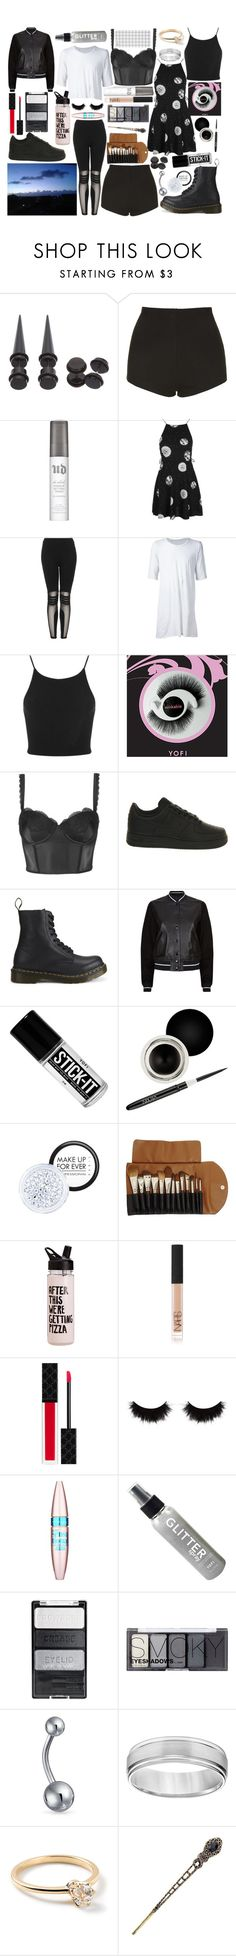 """Untitled #234"" by jade-bellex ❤ liked on Polyvore featuring Topshop, Urban Decay, Boris Bidjan Saberi, Miss Selfridge, NIKE, Dr. Martens, rag & bone, Nouba, MAKE UP FOR EVER and Claudio Riaz"